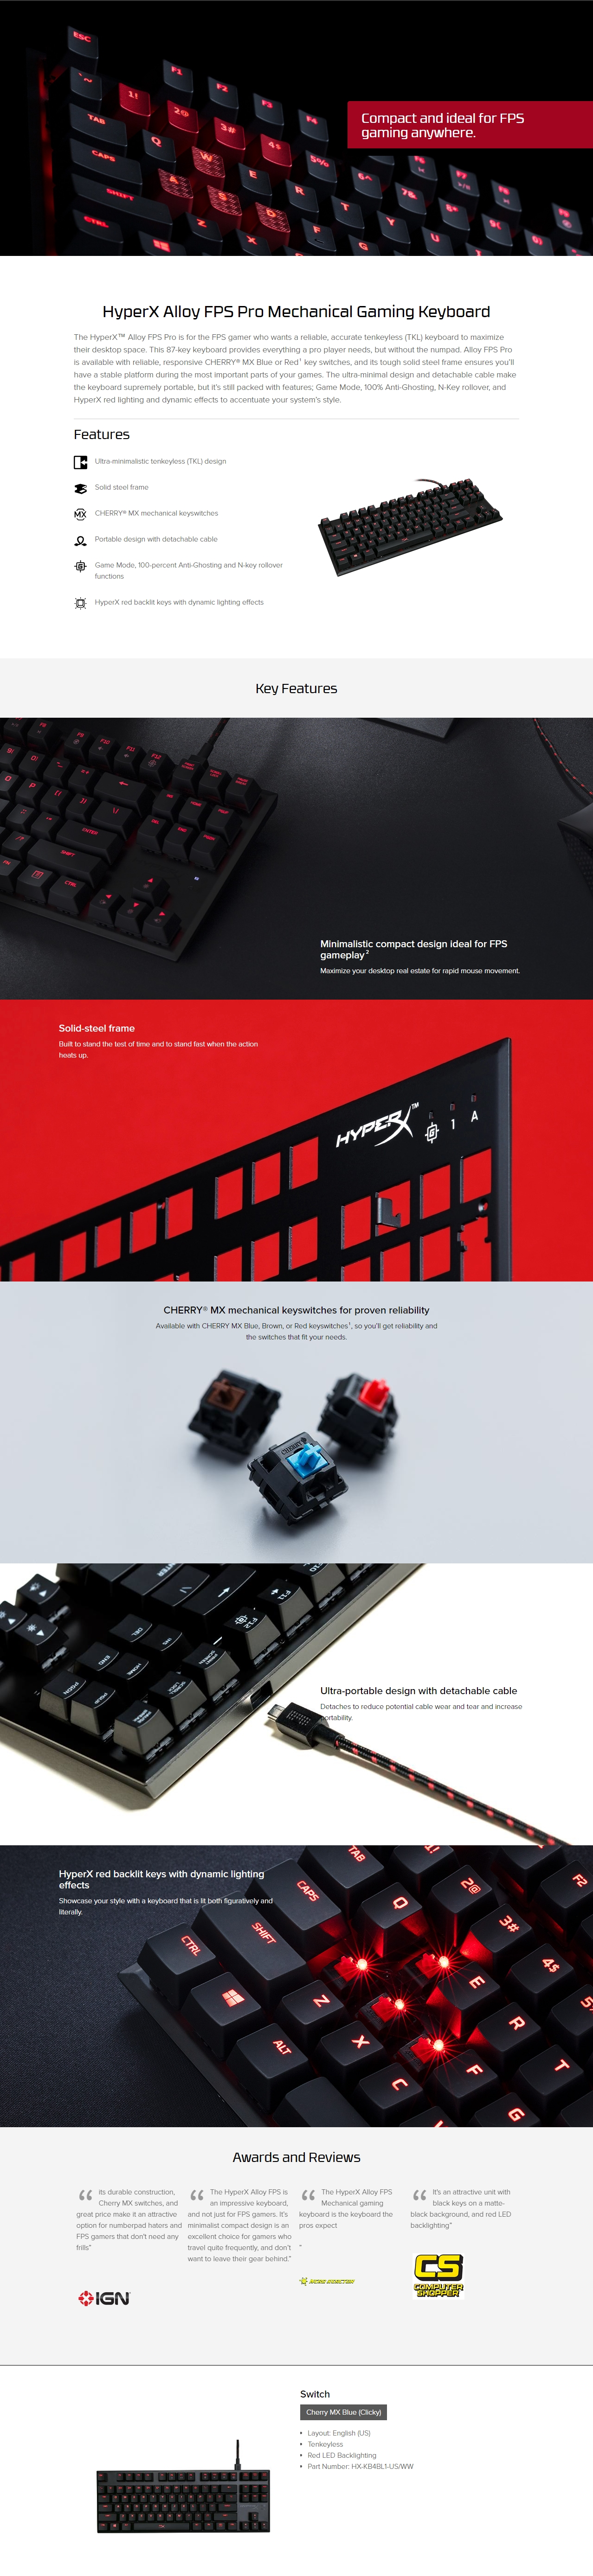 A large marketing image providing additional information about the product Kingston HyperX Alloy Pro Mechanical Gaming Keyboard (MX Blue) - Additional alt info not provided